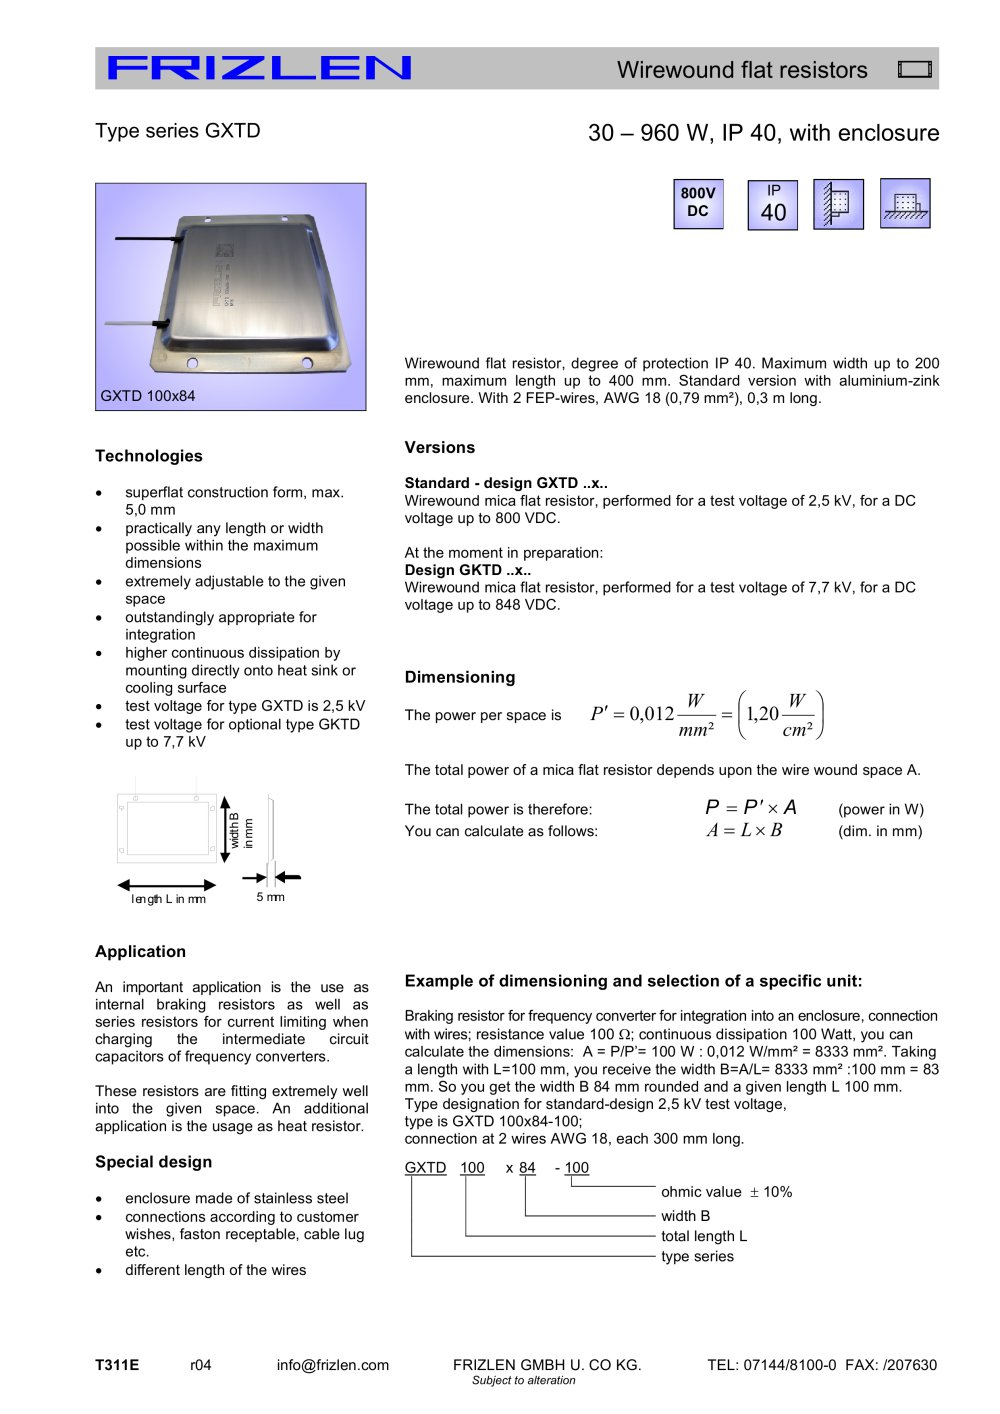 Gxtd Series Frizlen Gmbh Co Kg Pdf Catalogs Technical Resistors How To Measure Current Practically In A Circuit 1 Pages